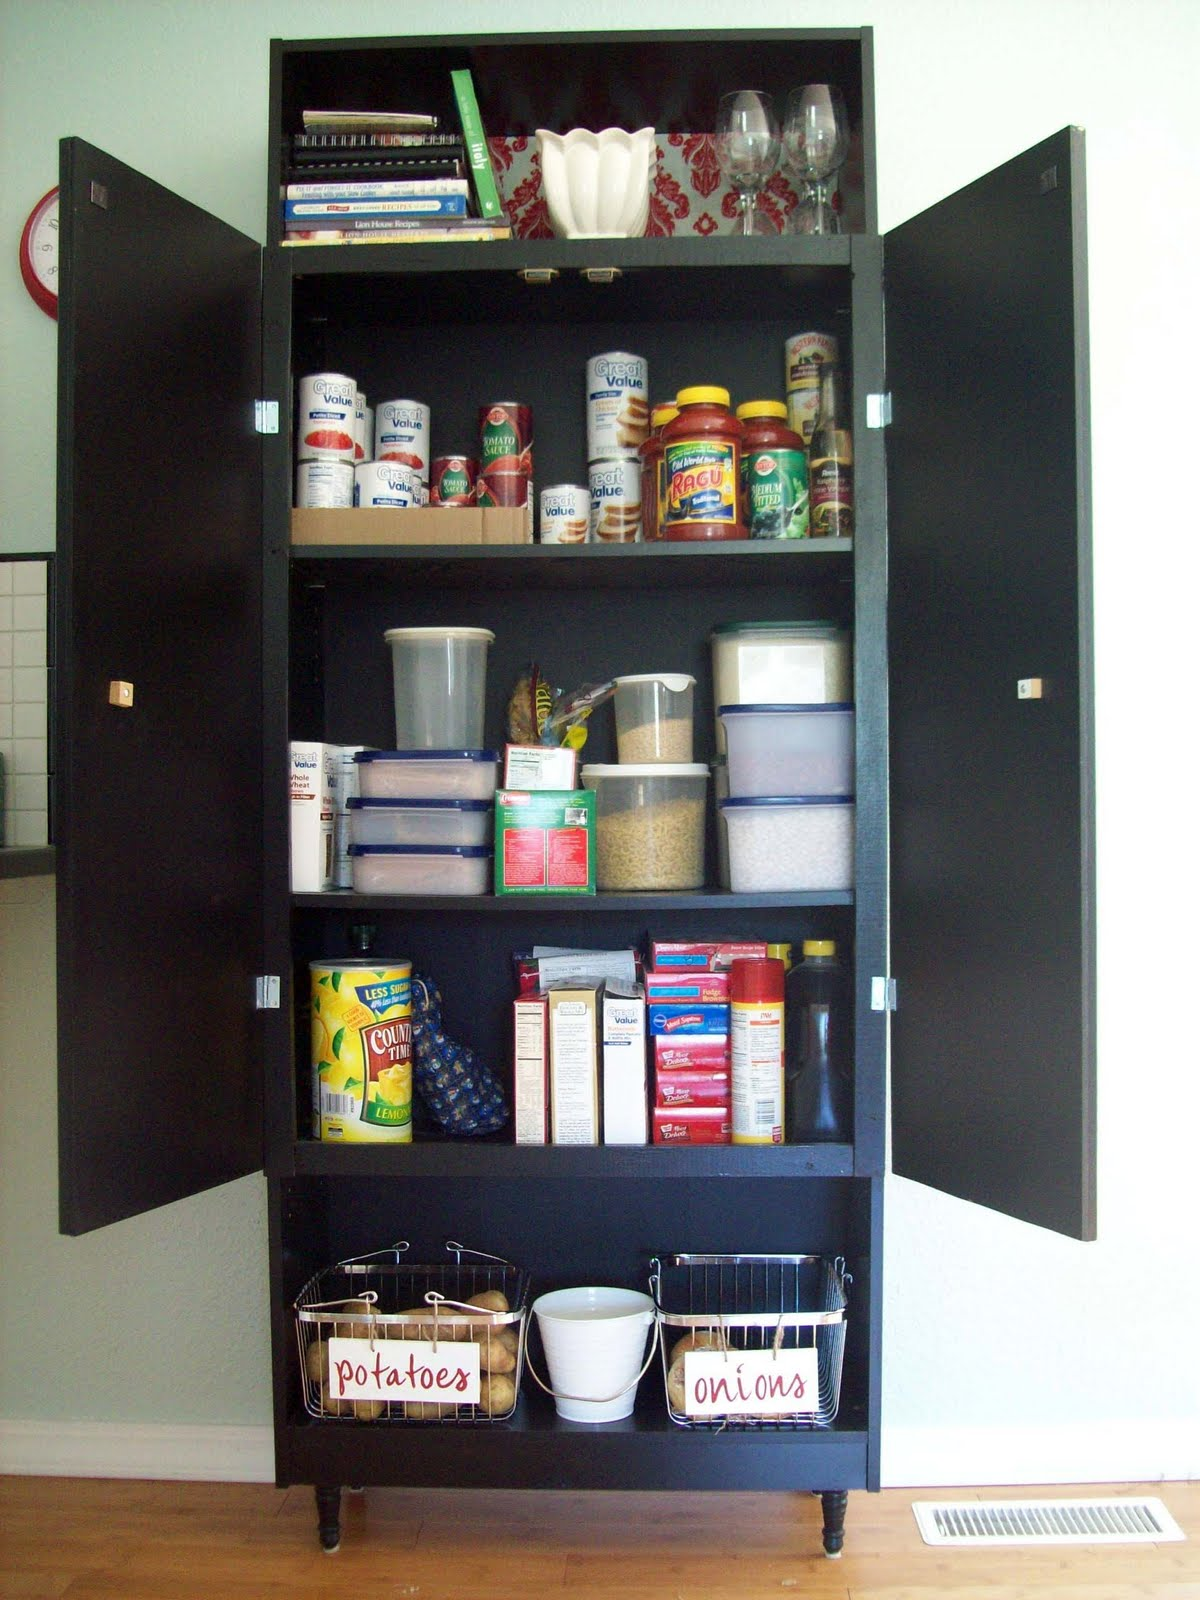 Running With Scissors: Mini Cellar Shelf on the Pantry